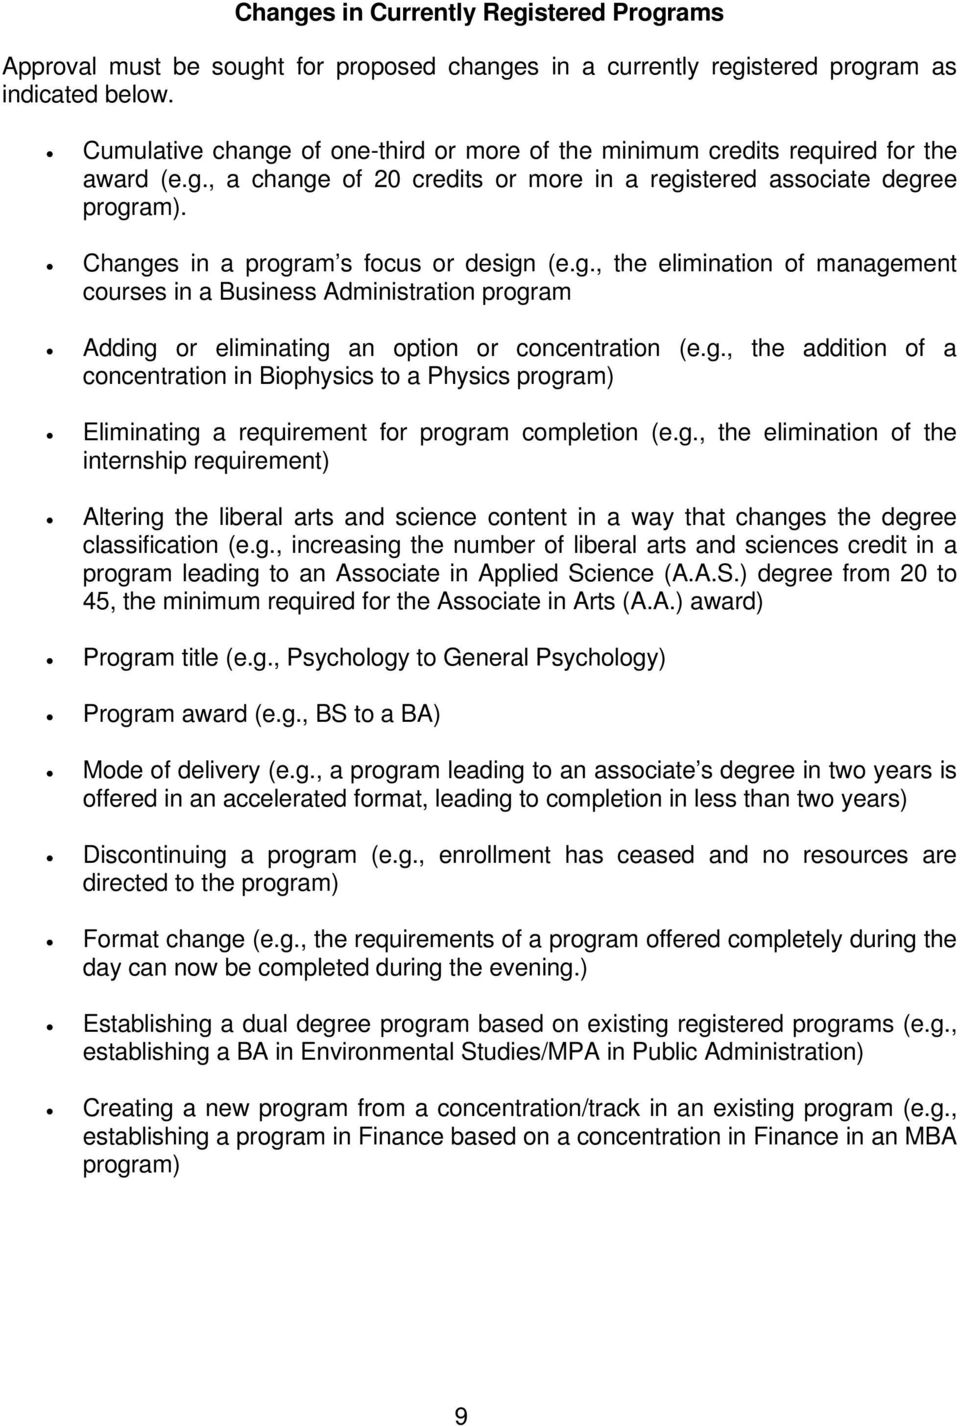 Changes in a program s focus or design (e.g., the elimination of management courses in a Business Administration program Adding or eliminating an option or concentration (e.g., the addition of a concentration in Biophysics to a Physics program) Eliminating a requirement for program completion (e.